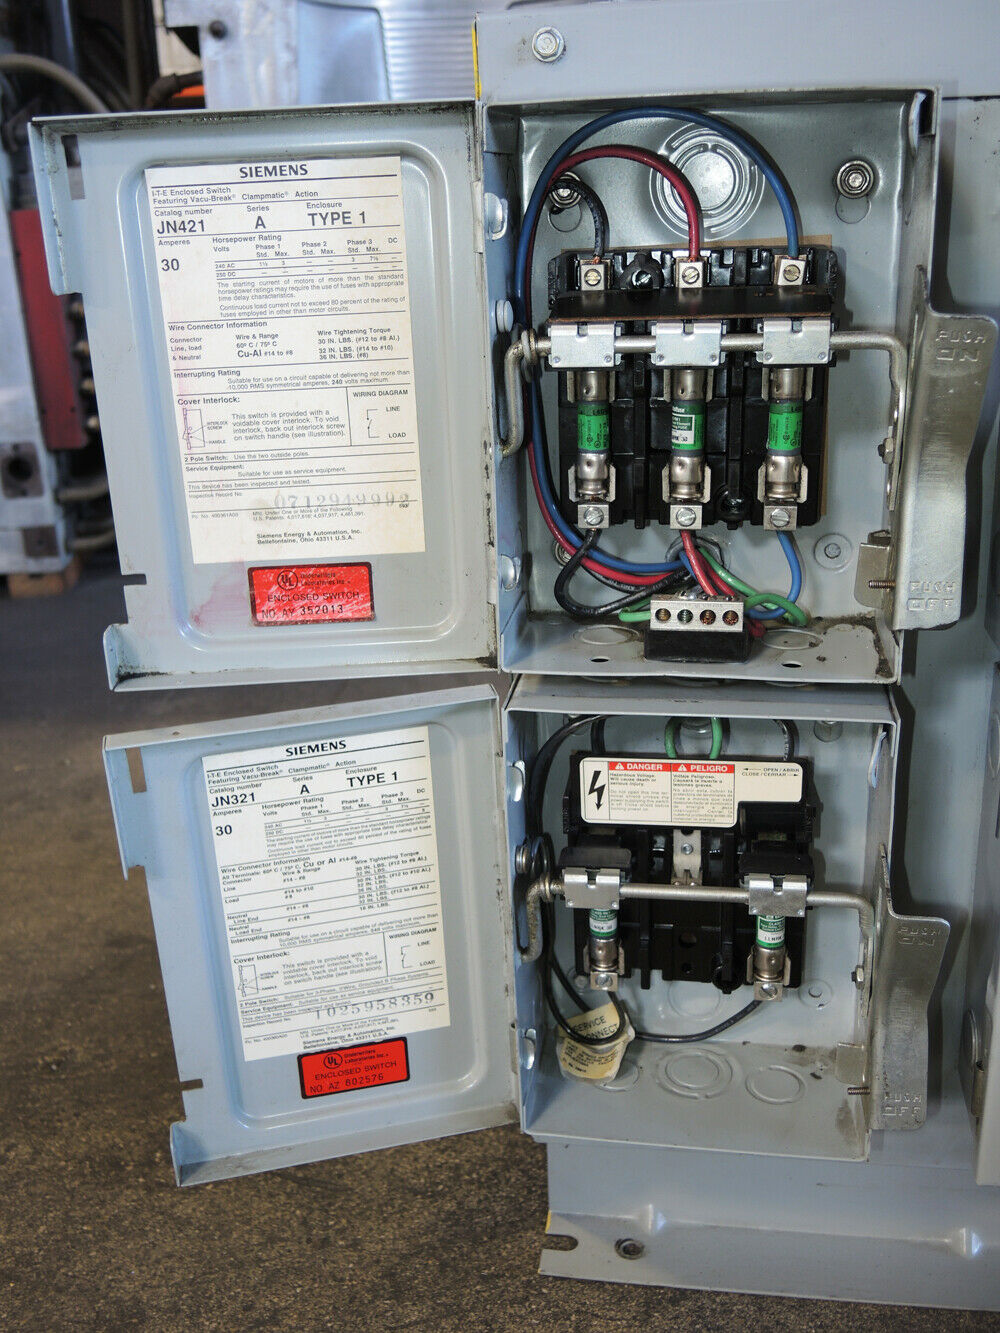 Acme Transformer T-3-53342-3 30 KVA 480 Delta to 240/120 Volts 3 Phase on